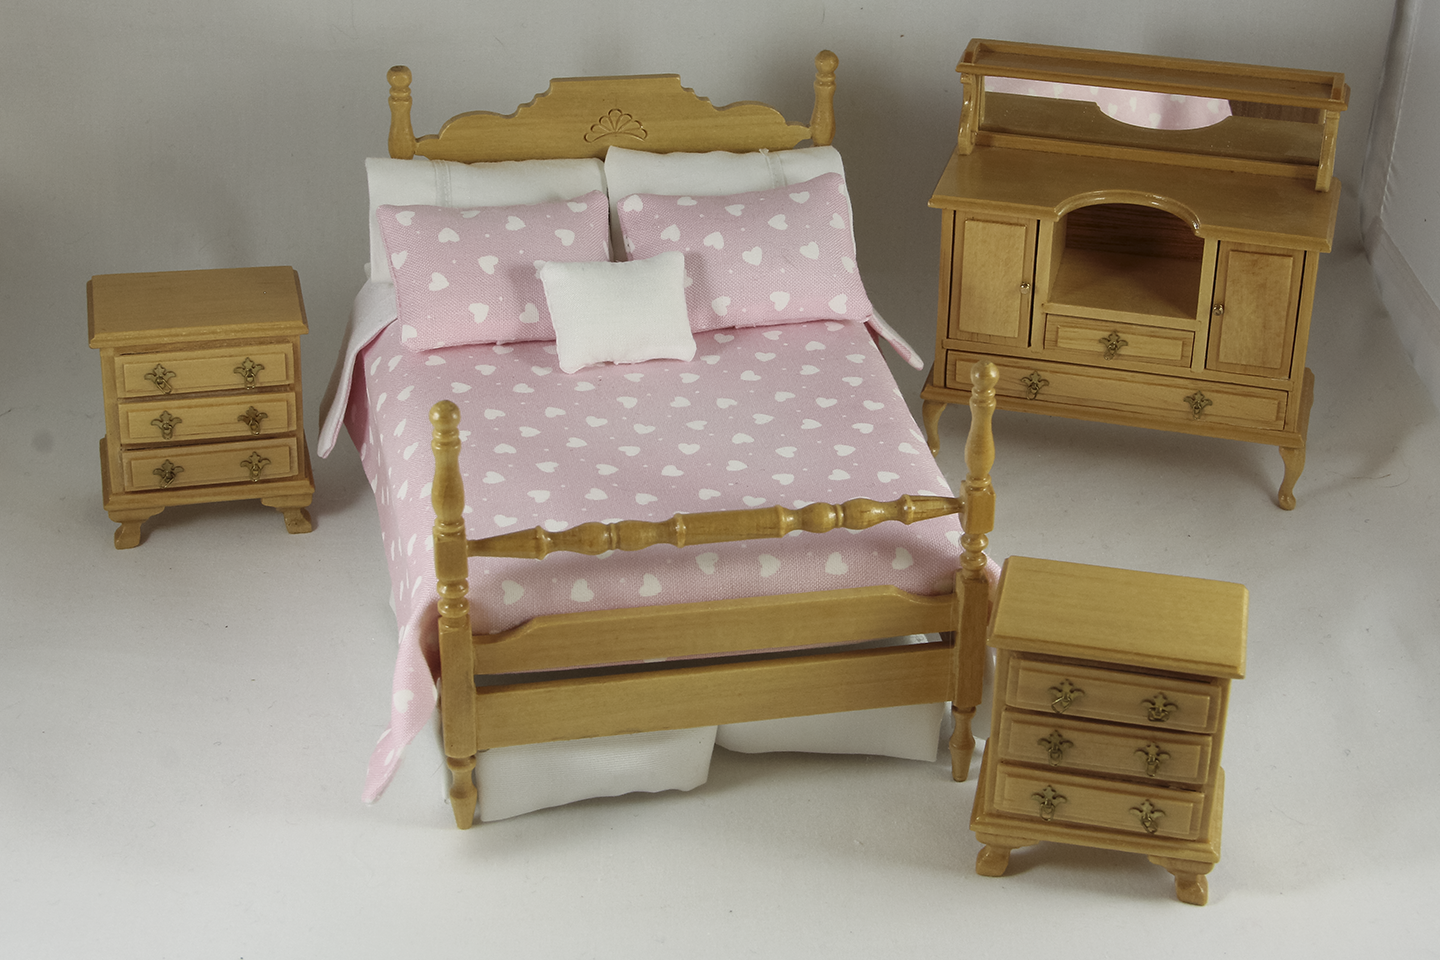 A fourpiece oak bedroom set with pink and white heart